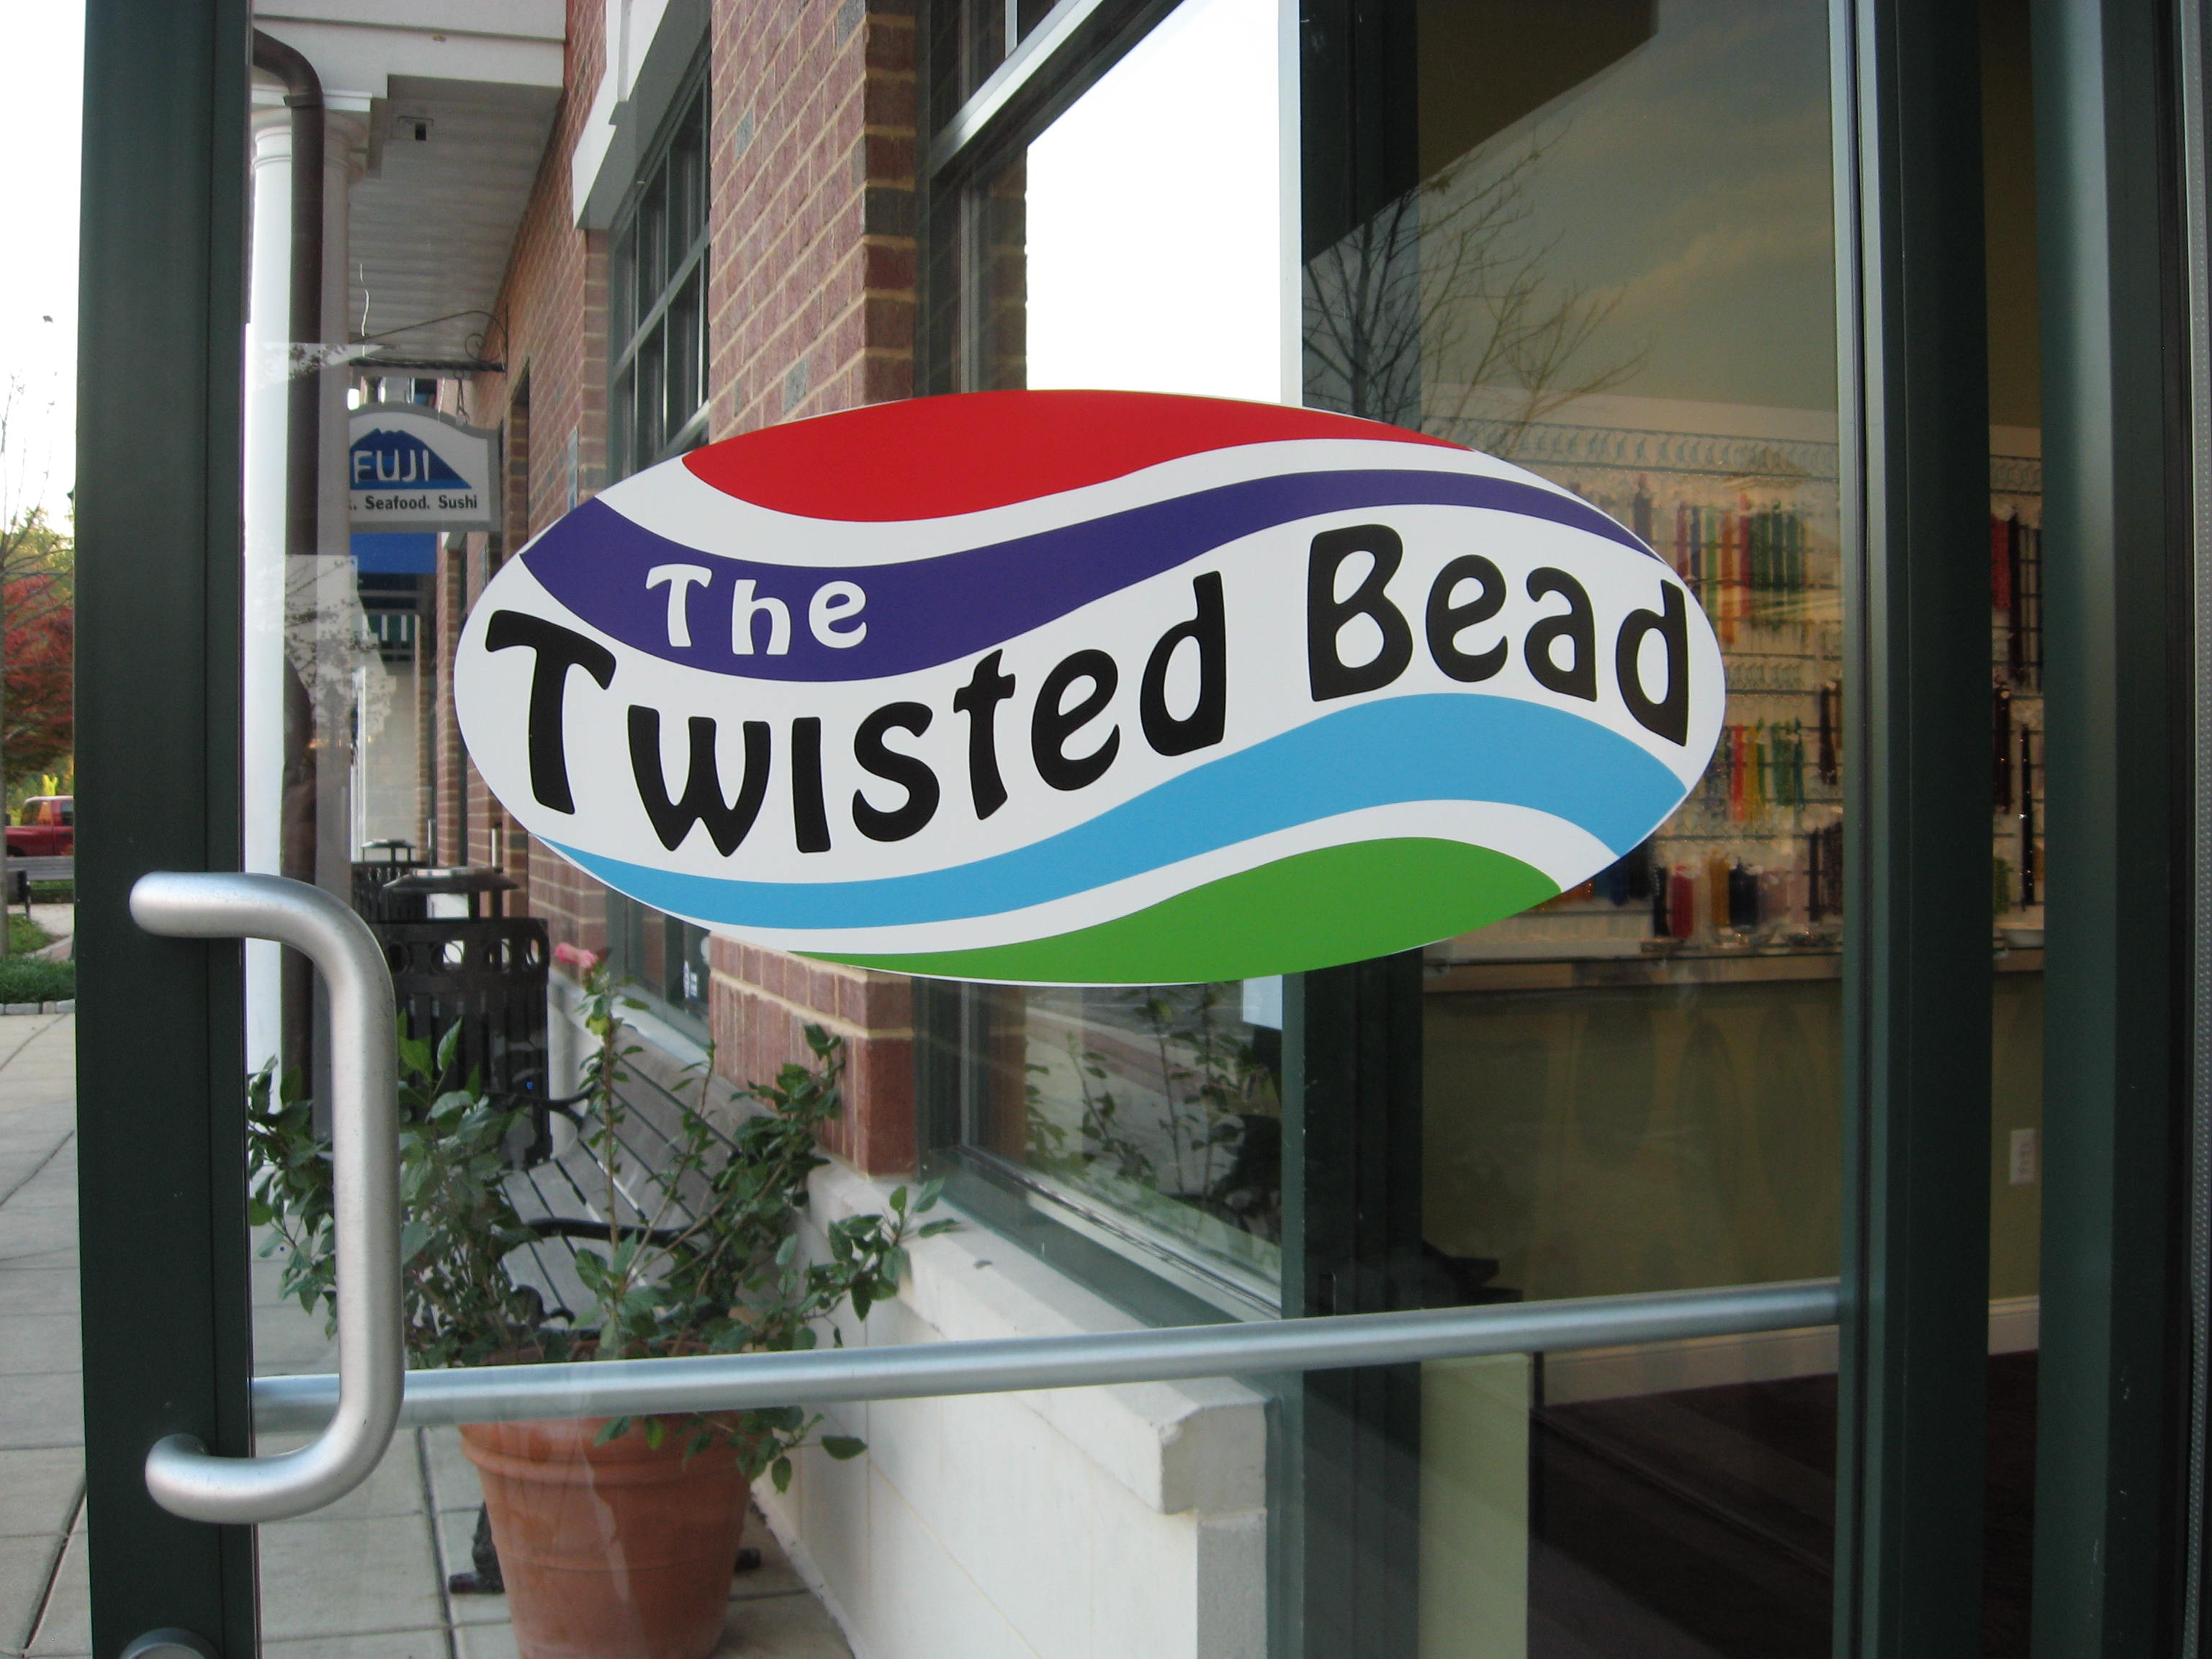 The Twisted Bead & Rock Shop door and logo.